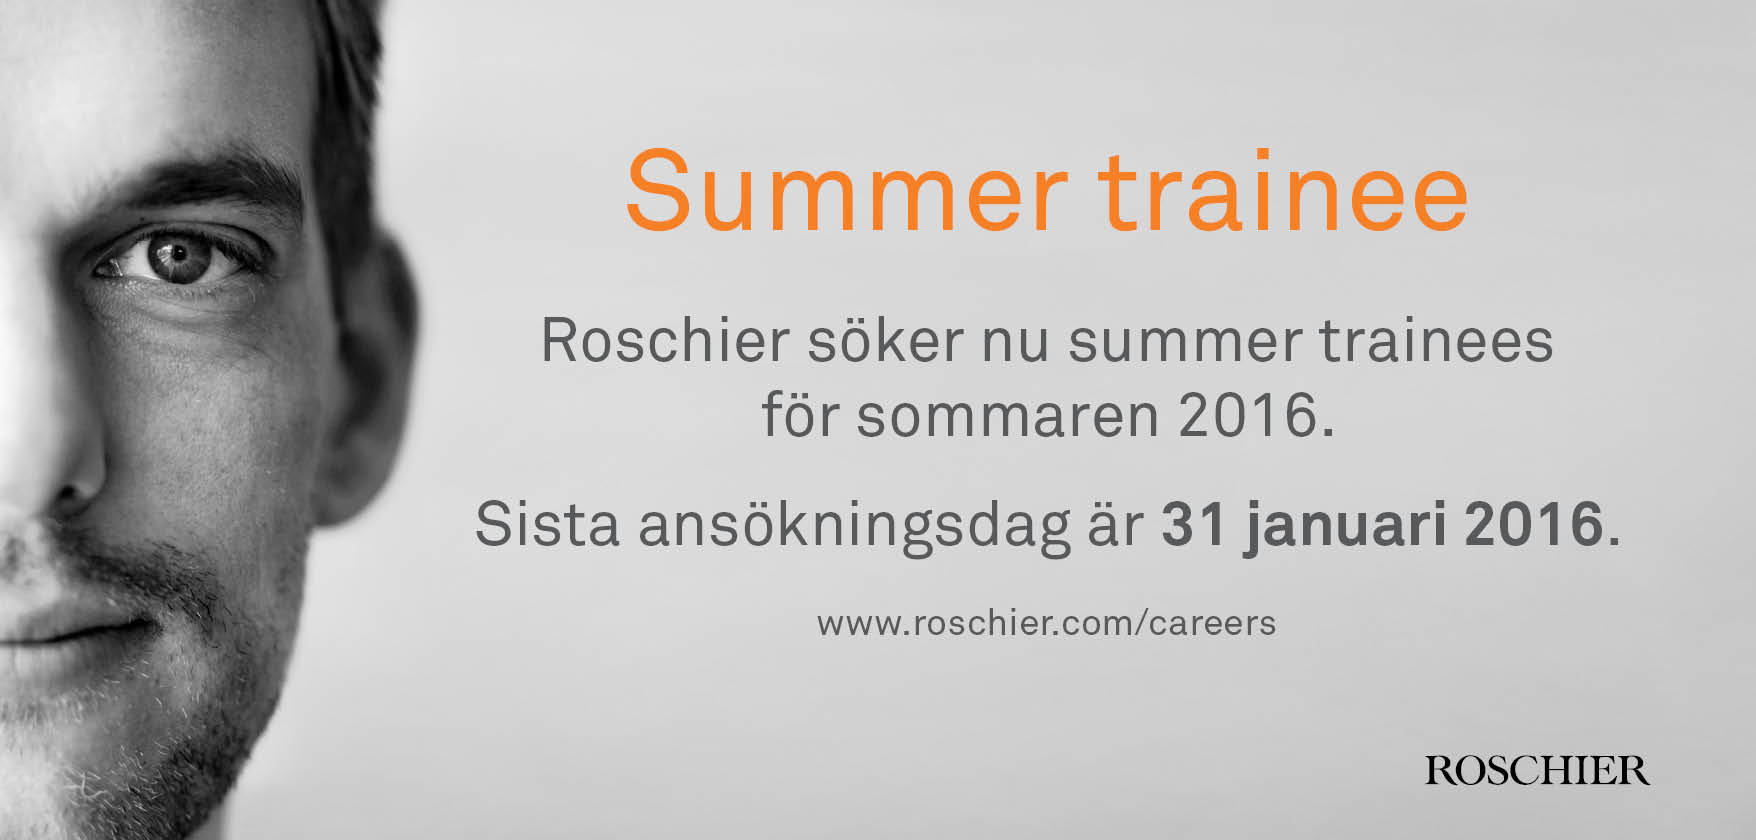 Roschier_rekrytering_Summer_trainee_facebook.2016 (1)